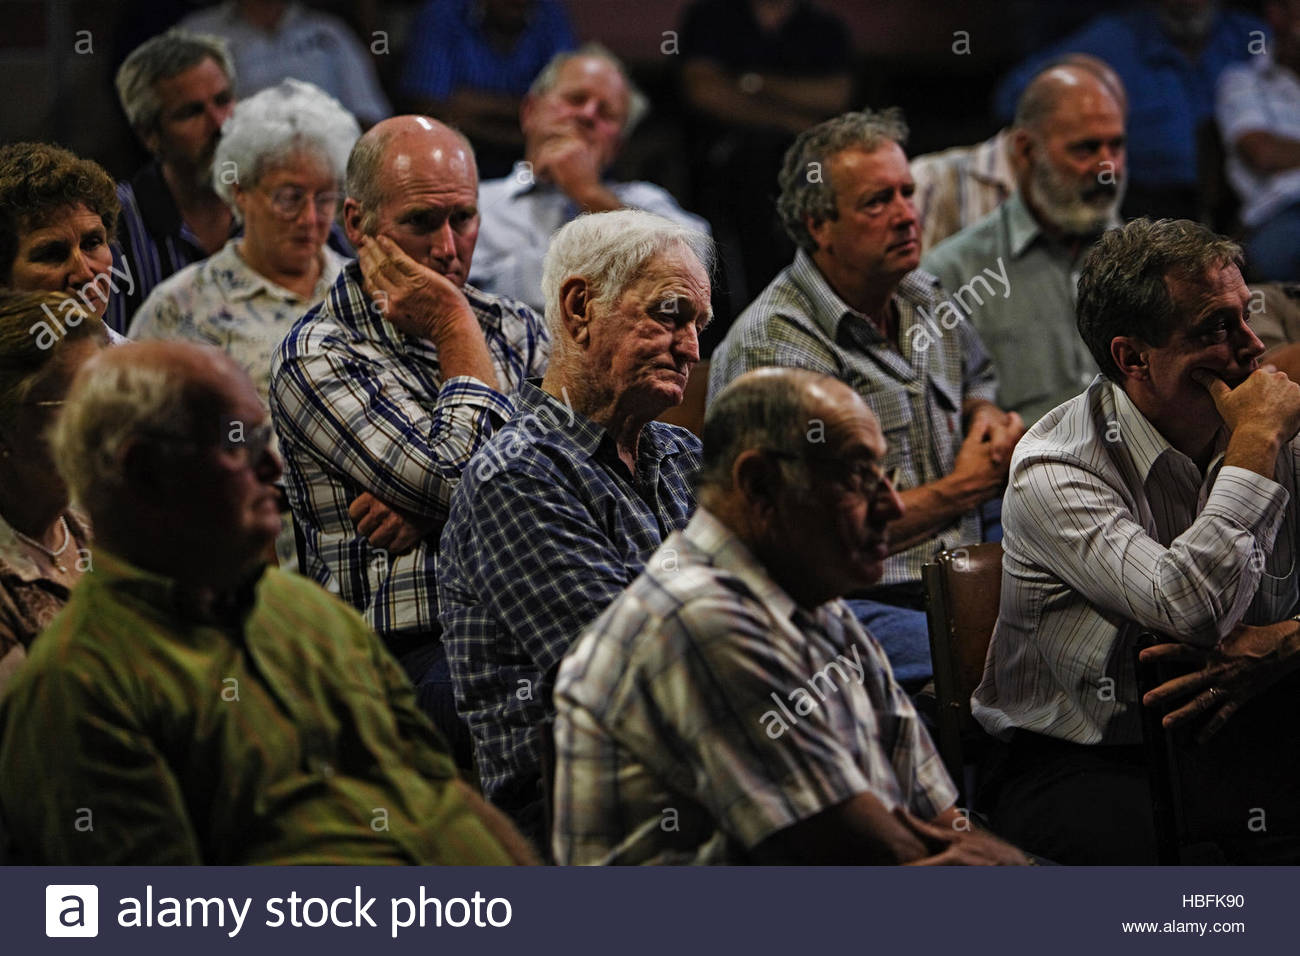 Rice farmers discuss water issues at a meeting. Stock Photo